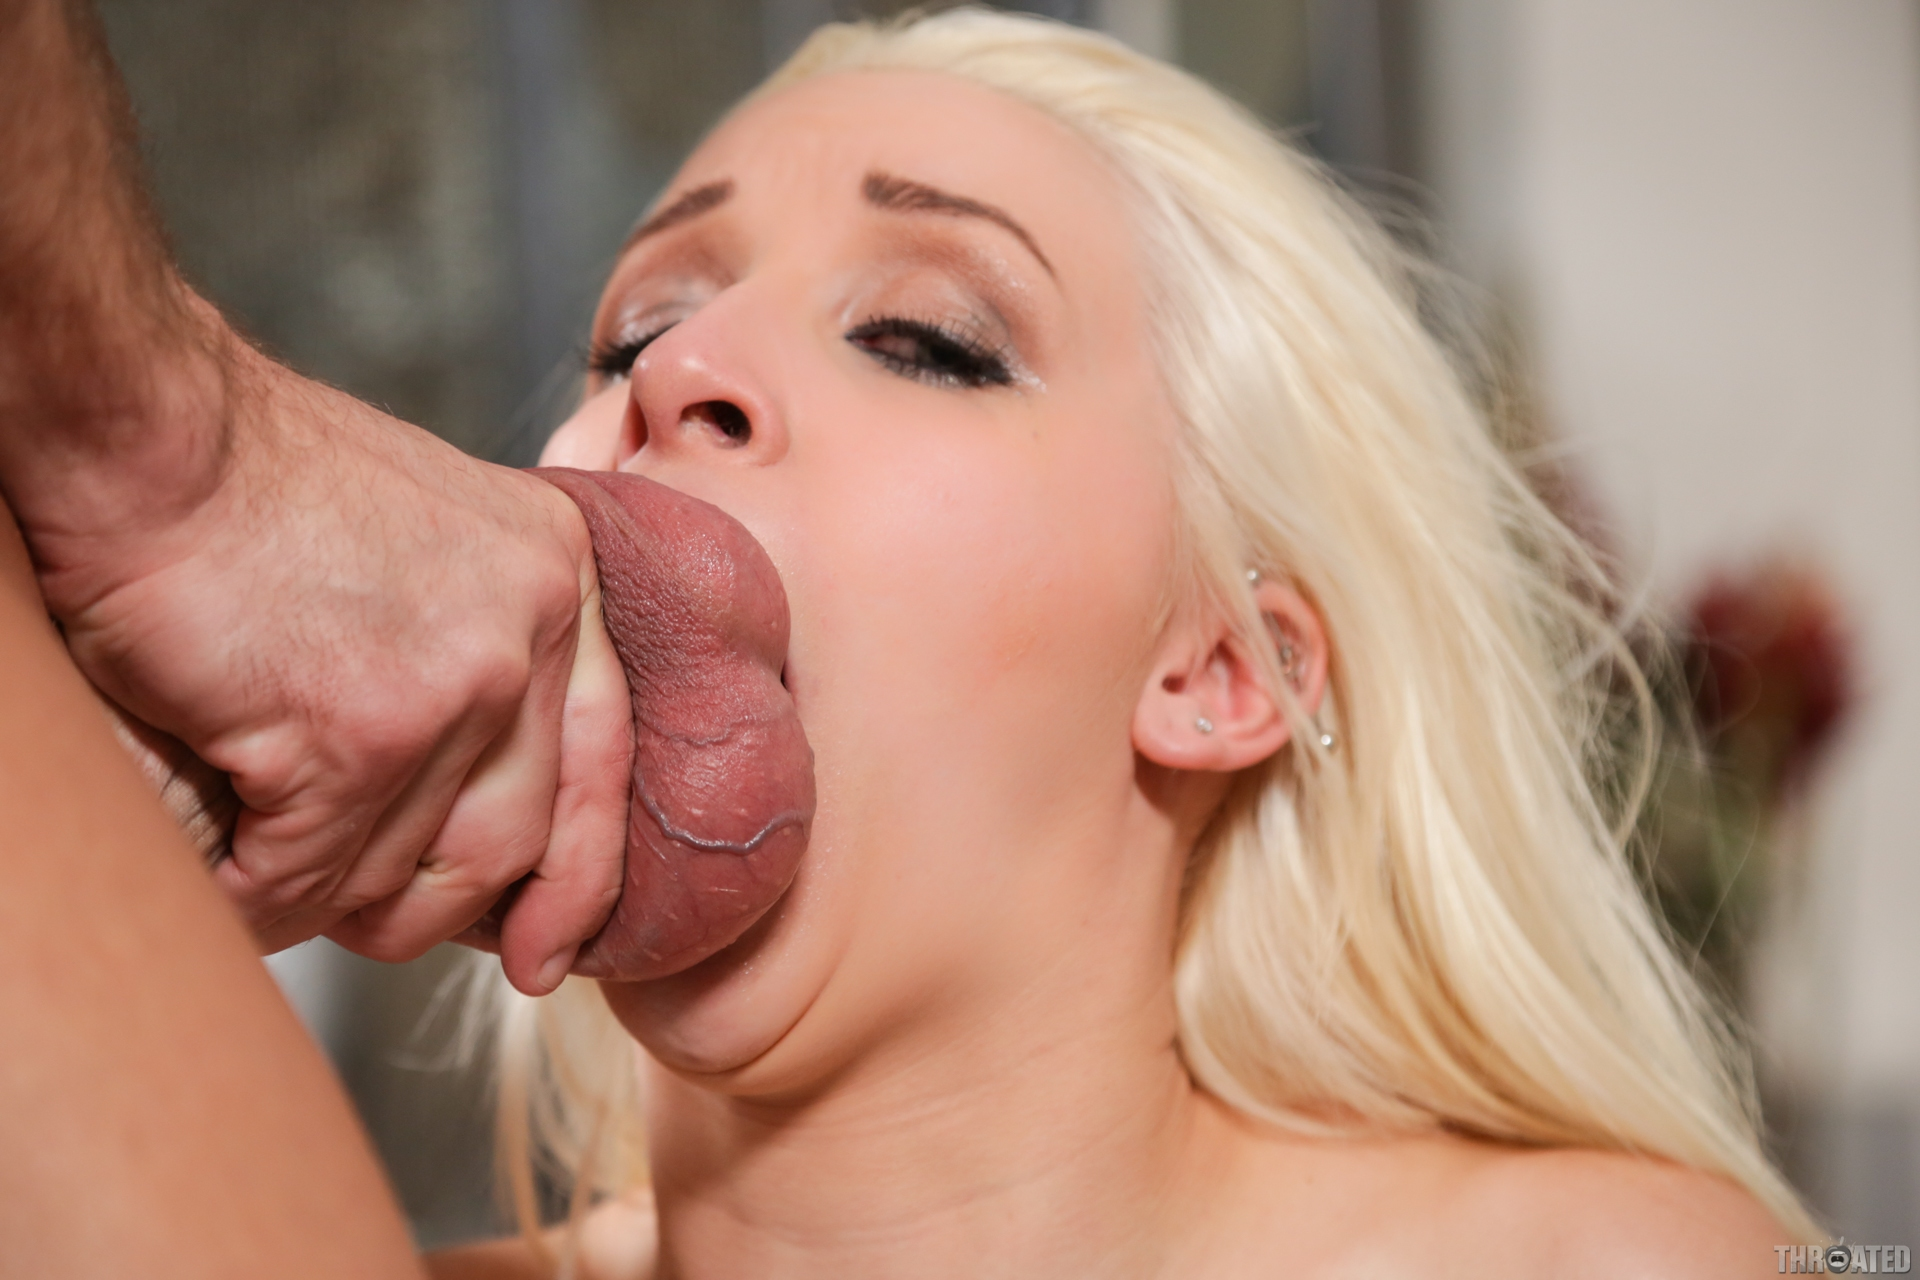 Oral Porno showing xxx images for extreme oral xxx | www.pornsink